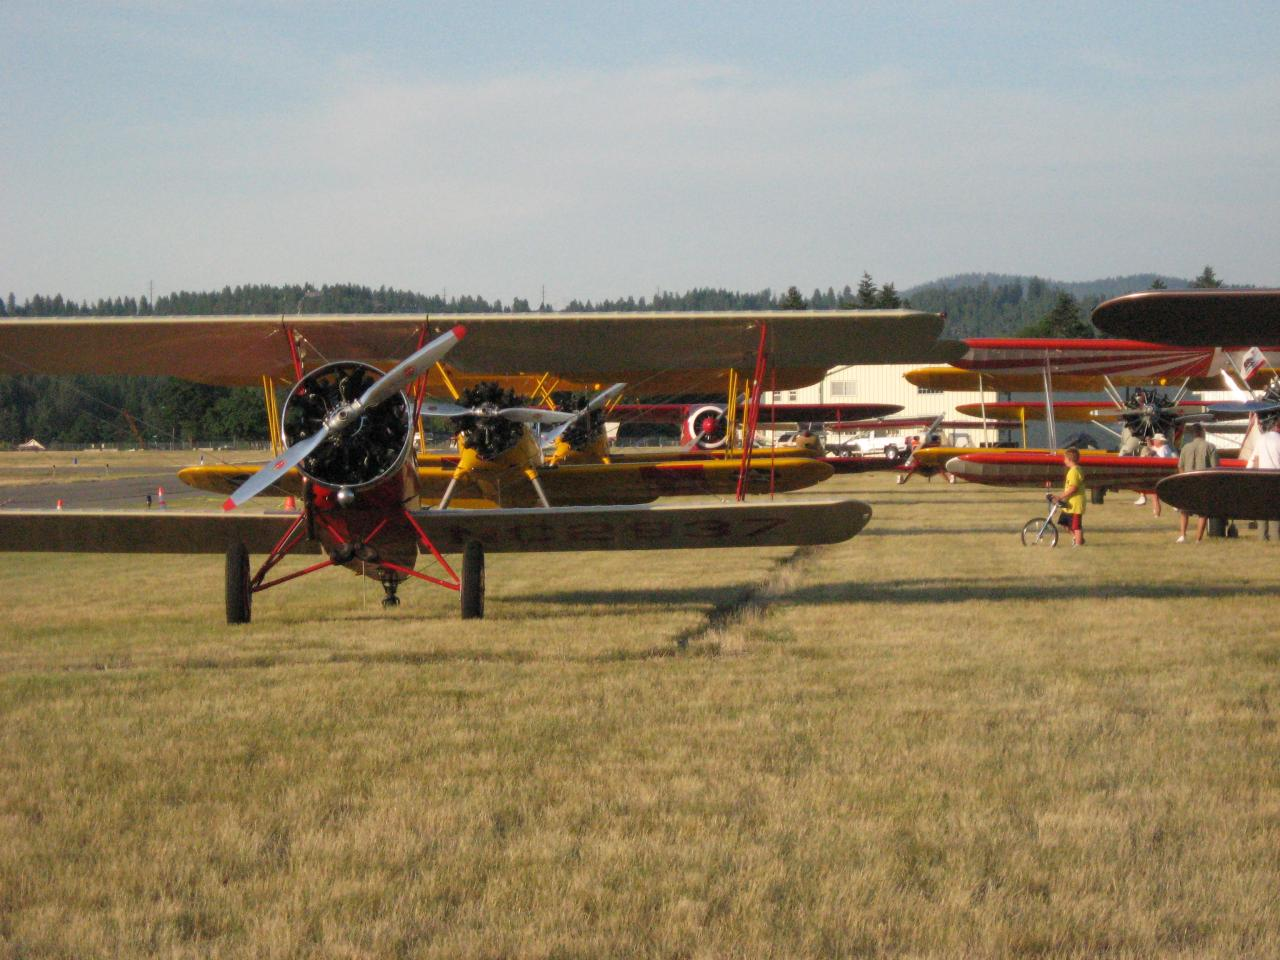 Register for the NW Biplane Fly-In